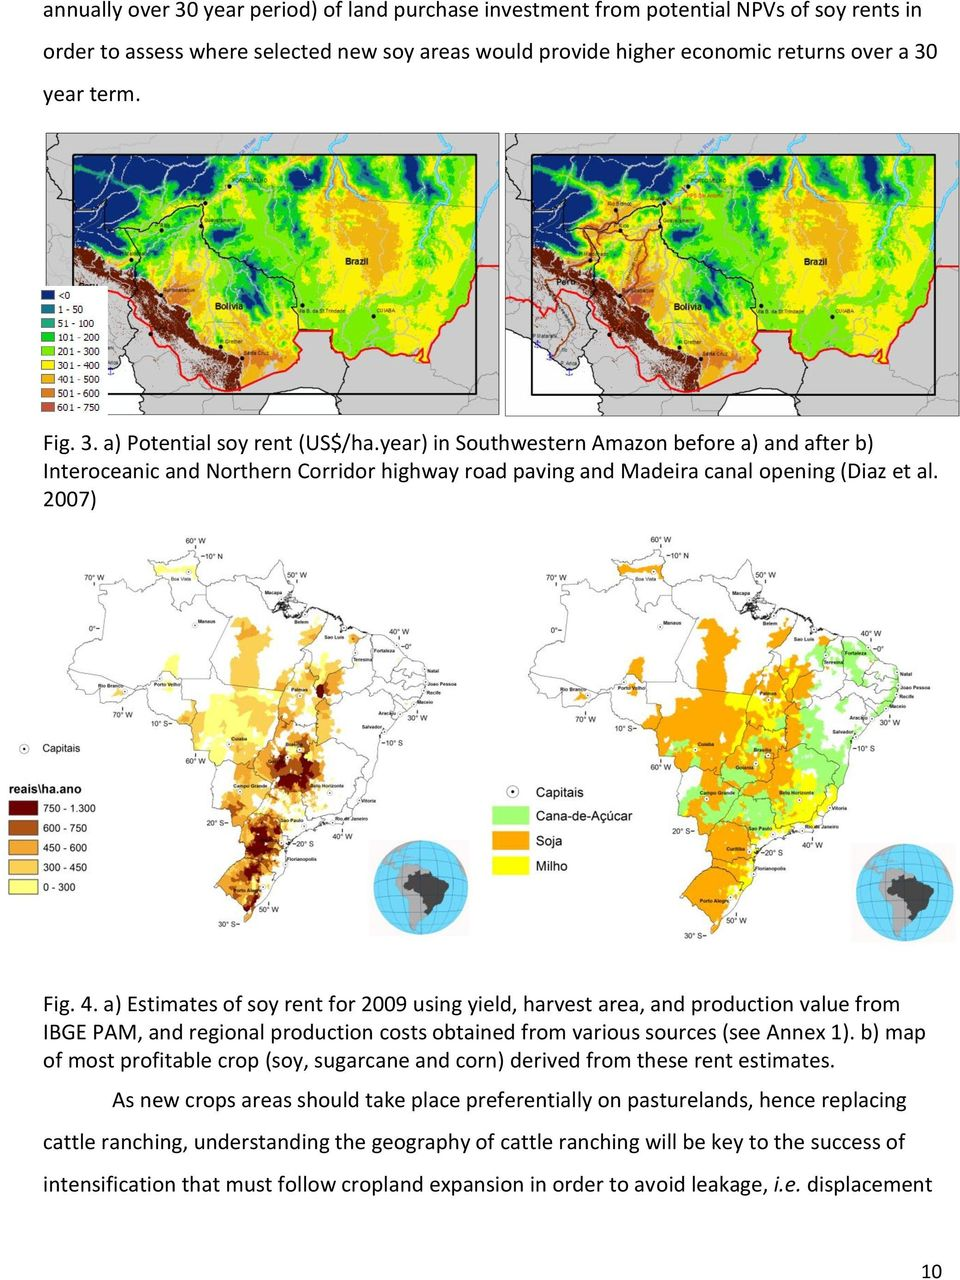 a) Estimates of soy rent for 2009 using yield, harvest area, and production value from IBGE PAM, and regional production costs obtained from various sources (see Annex 1).